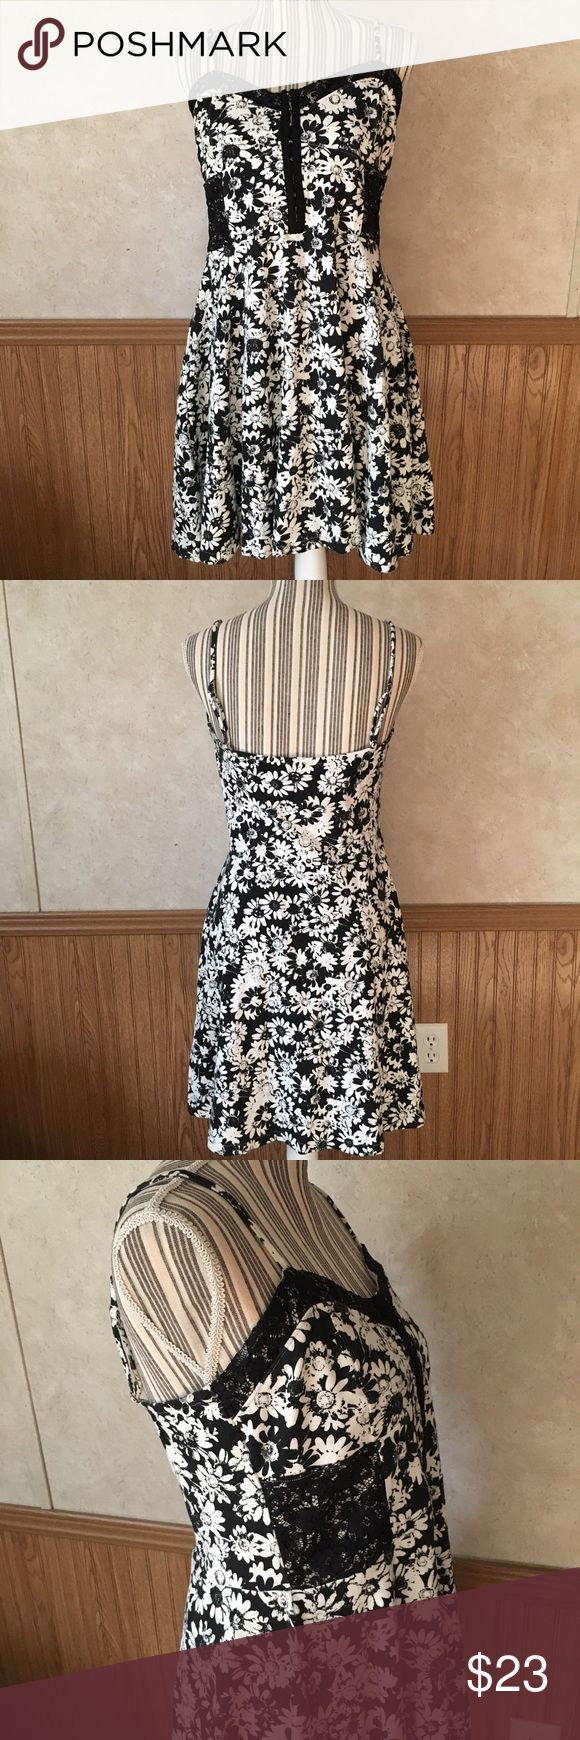 Black and white floral mini dress Soft fabric black and white floral mini dress with adjustable straps, lace accents, and corset closure front. Dresses Mini